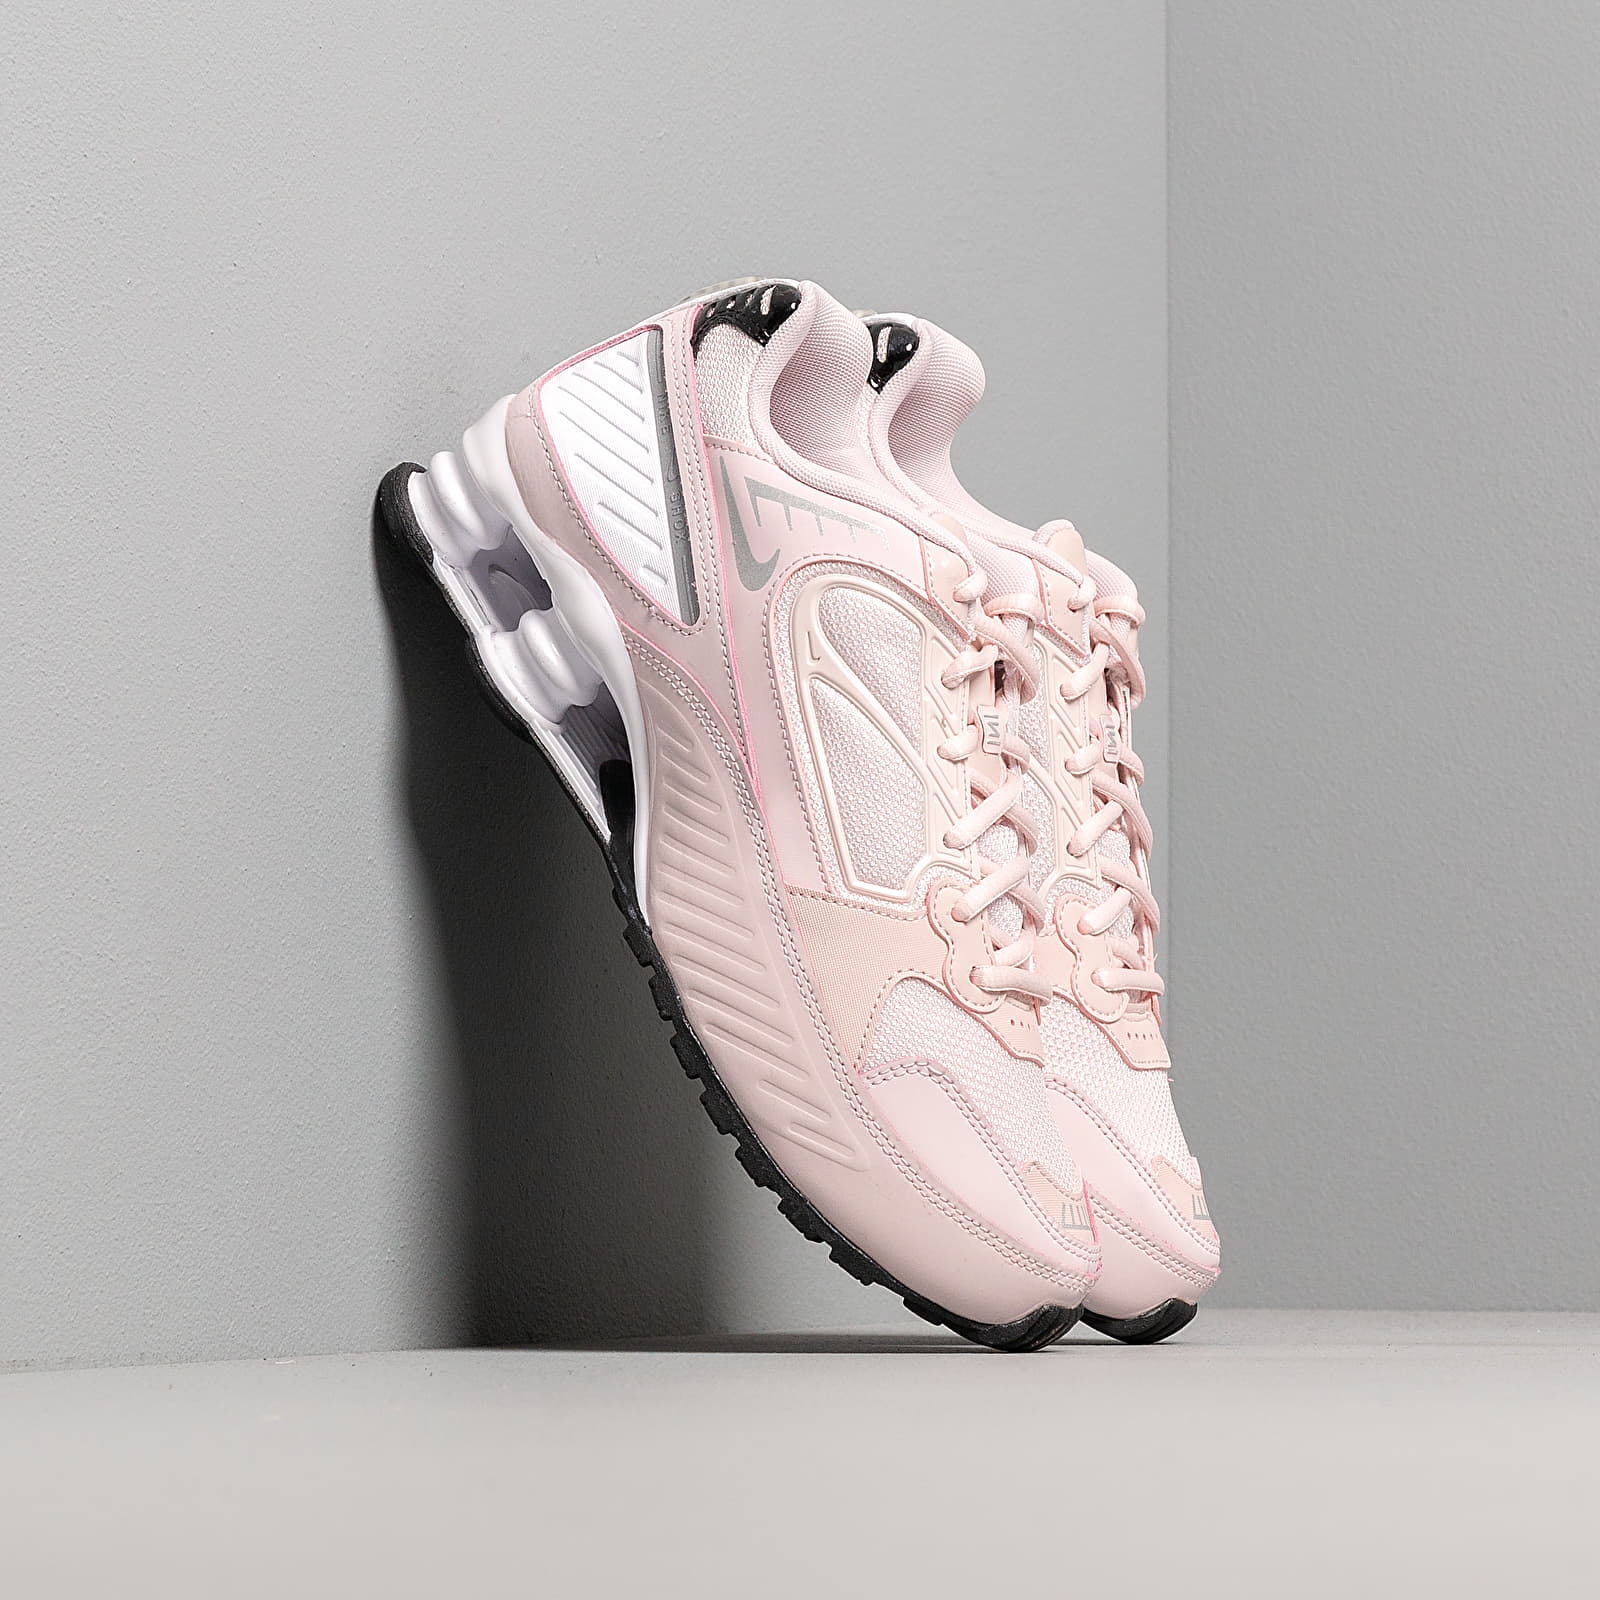 Nike W Shox Enigma 9000 Barely Rose/ Reflect Silver-Black-White | Footshop